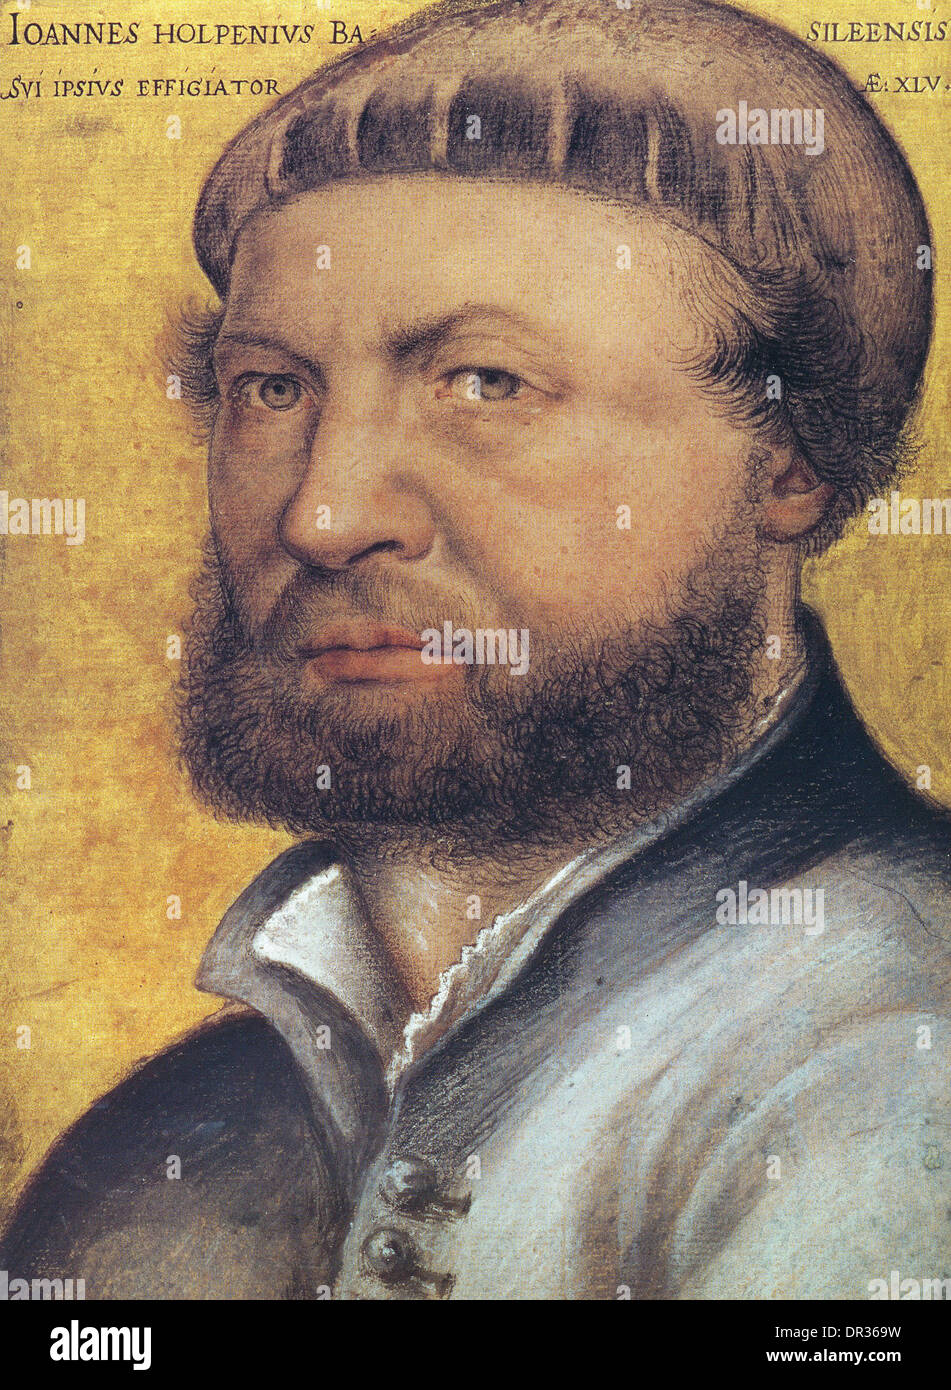 Hans Holbein the Younger, self portrait, German artist - Stock Image